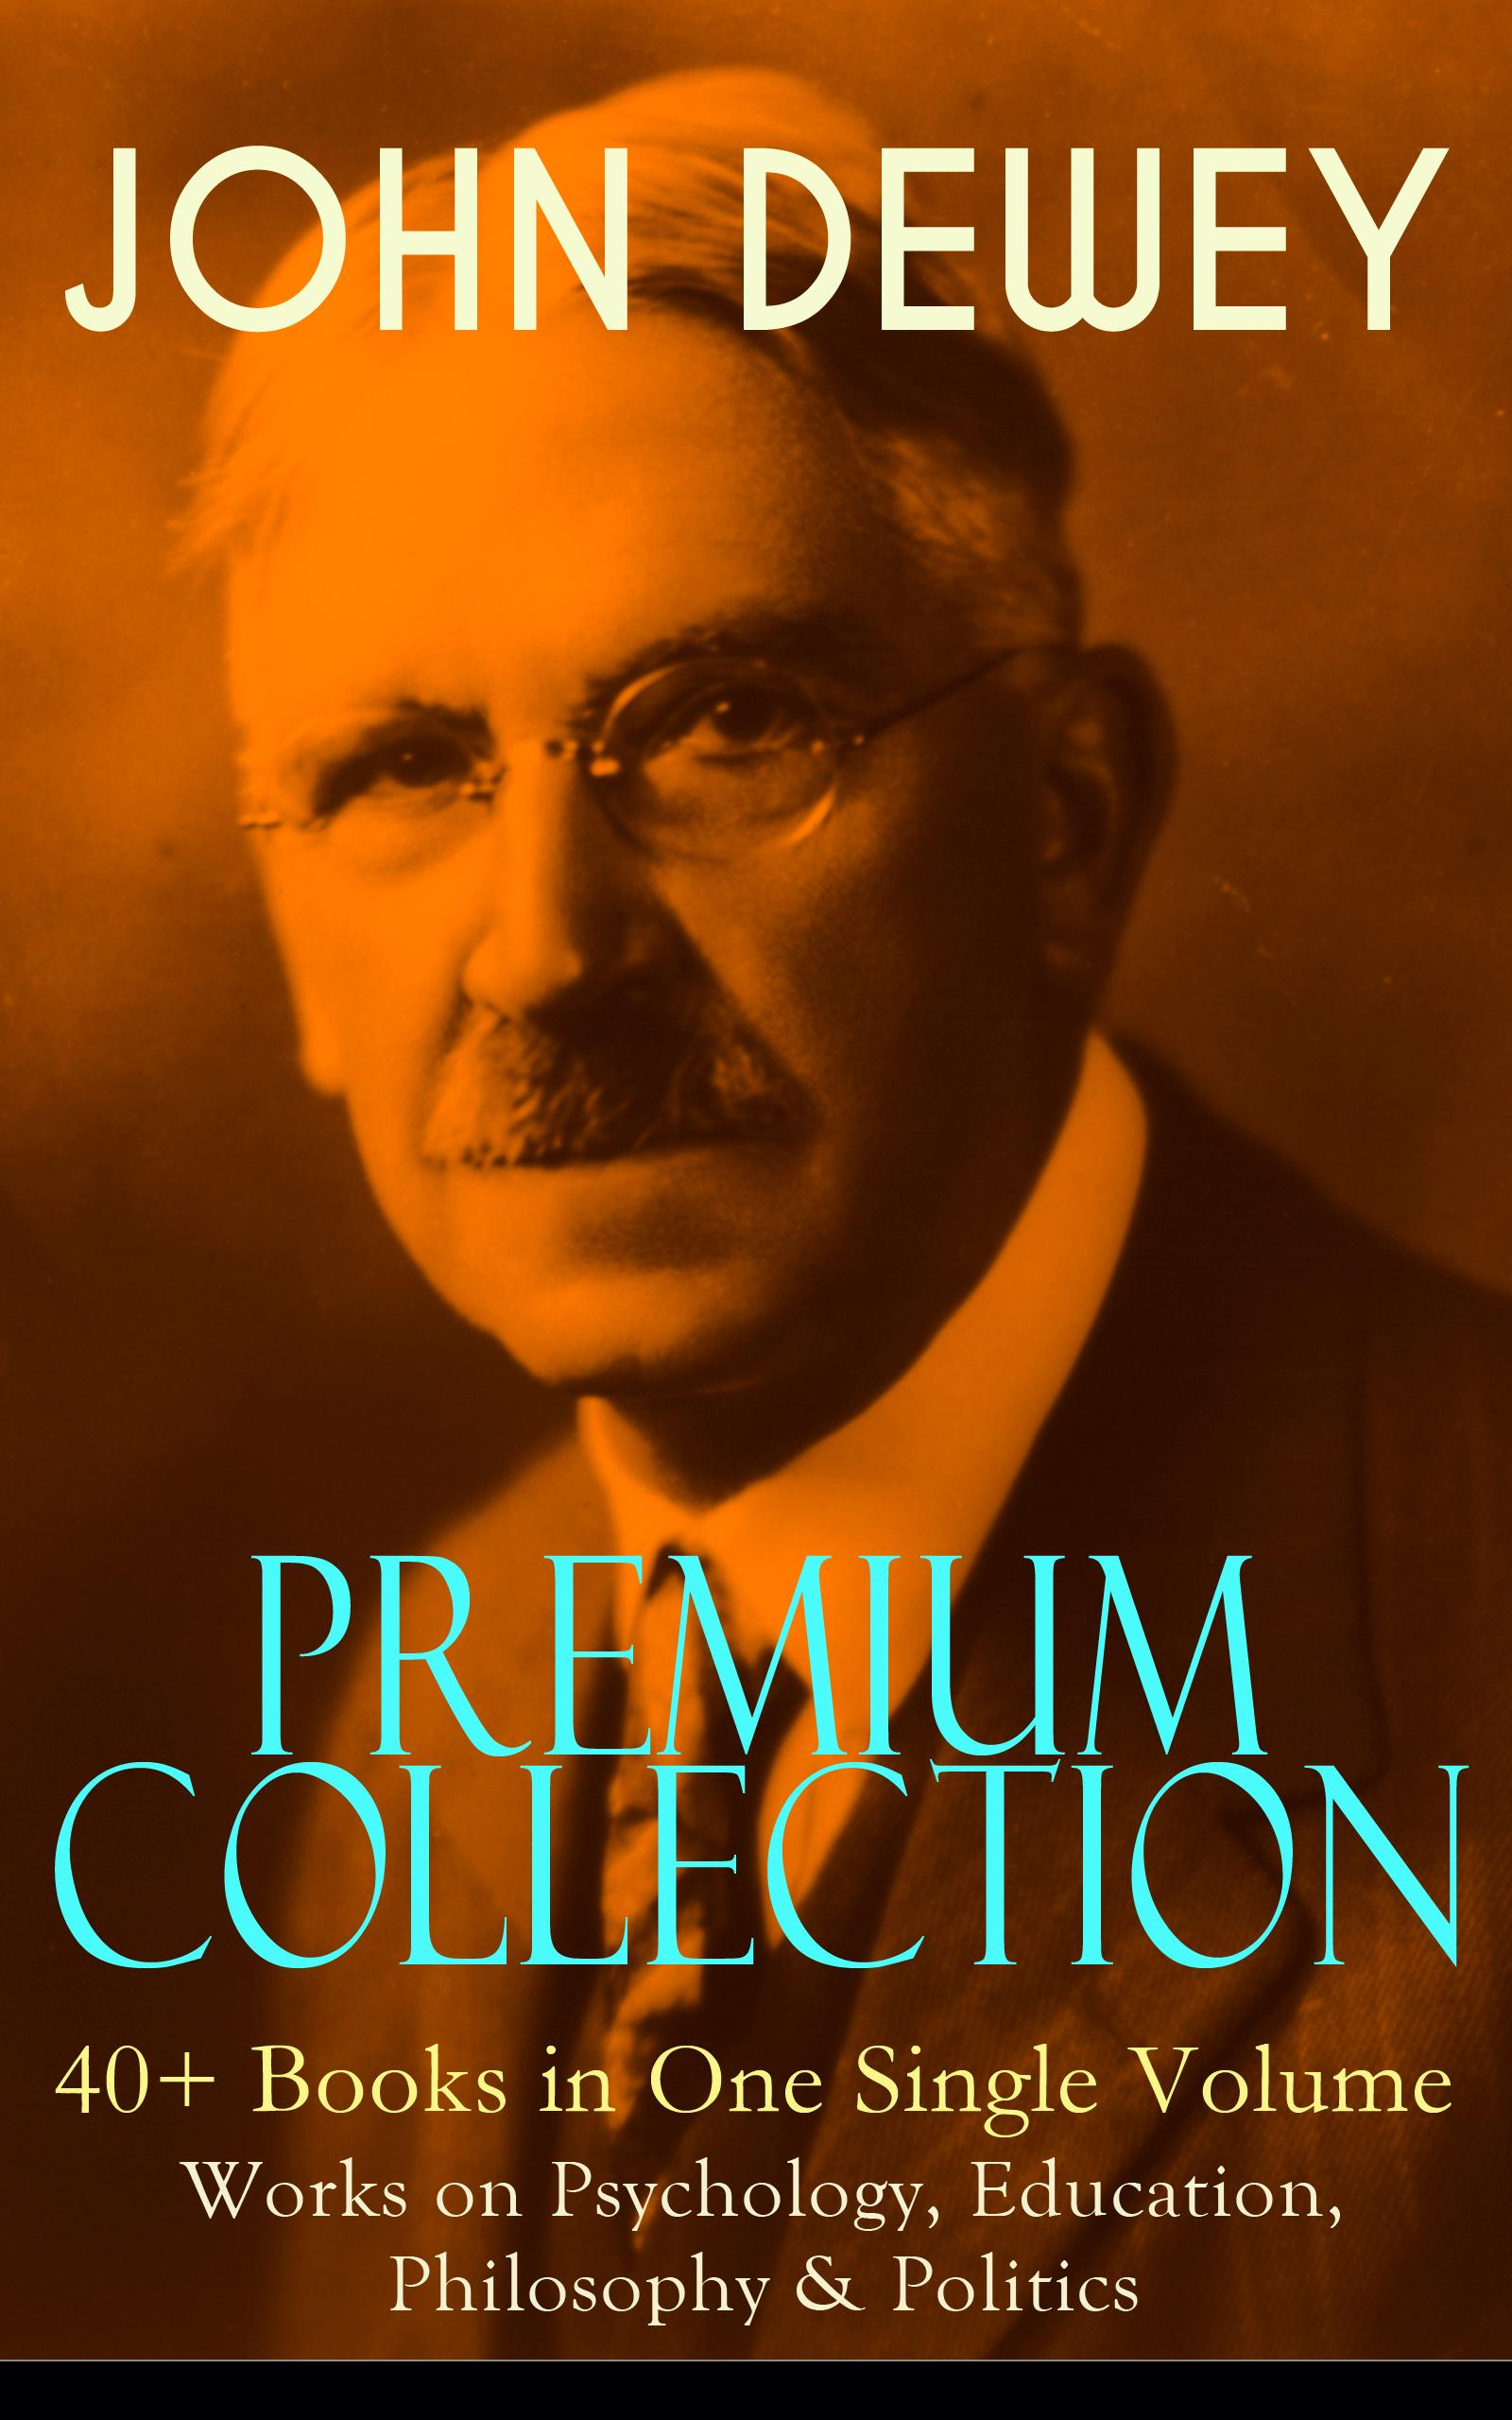 JOHN DEWEY Premium Collection - 40+ Books in One Single Volume: Works on Psychology, Education, Philosophy & Politics